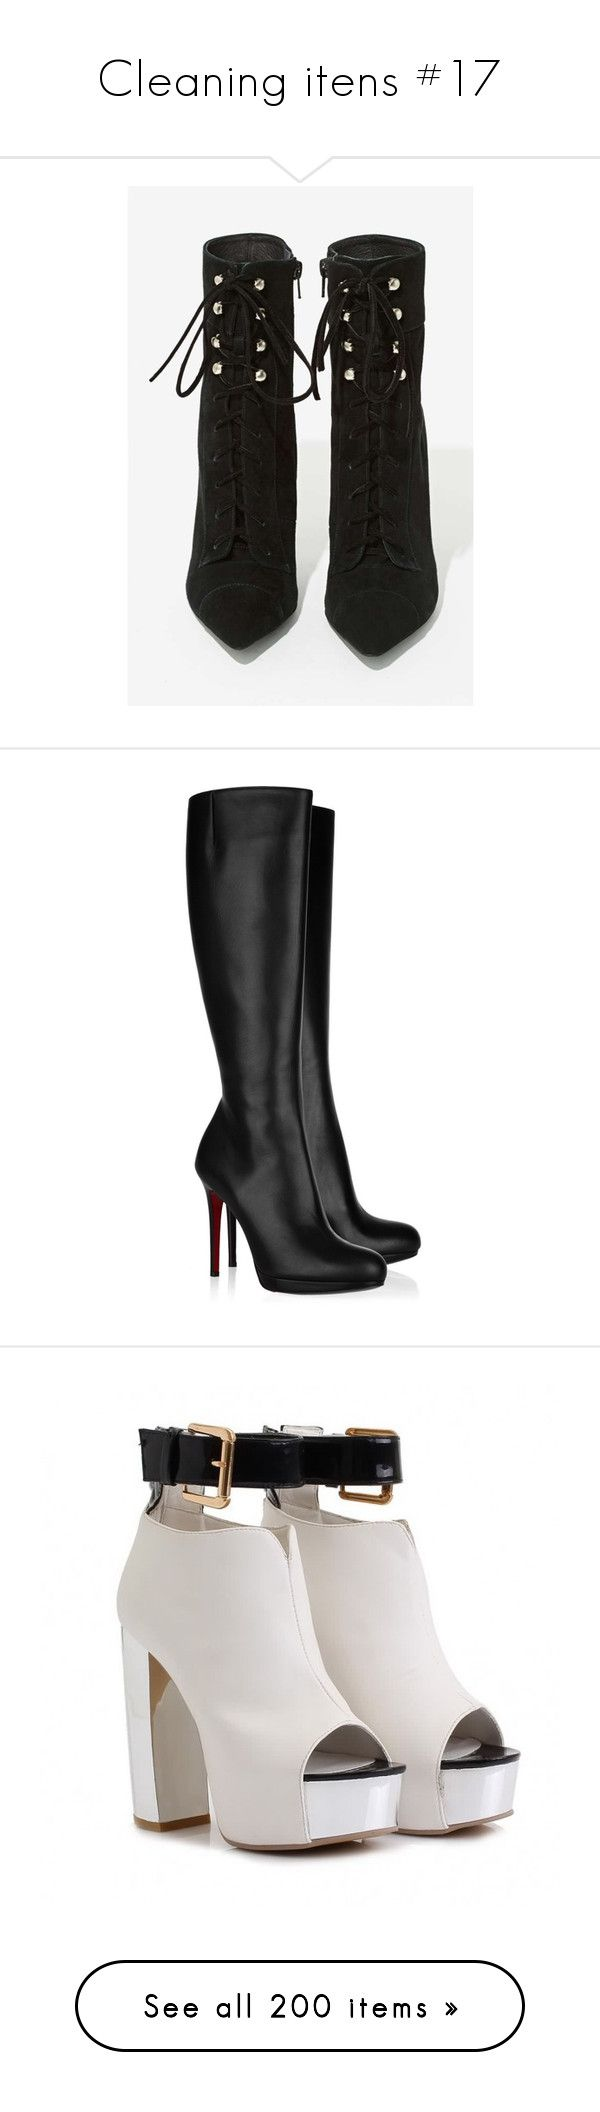 """Cleaning itens #17"" by gabriela-glockshuber ❤ liked on Polyvore featuring shoes, boots, ankle boot, pointed-toe boots, pointy-toe ankle boots, black suede boots, black boots, black ankle boots, heels and sapatos"